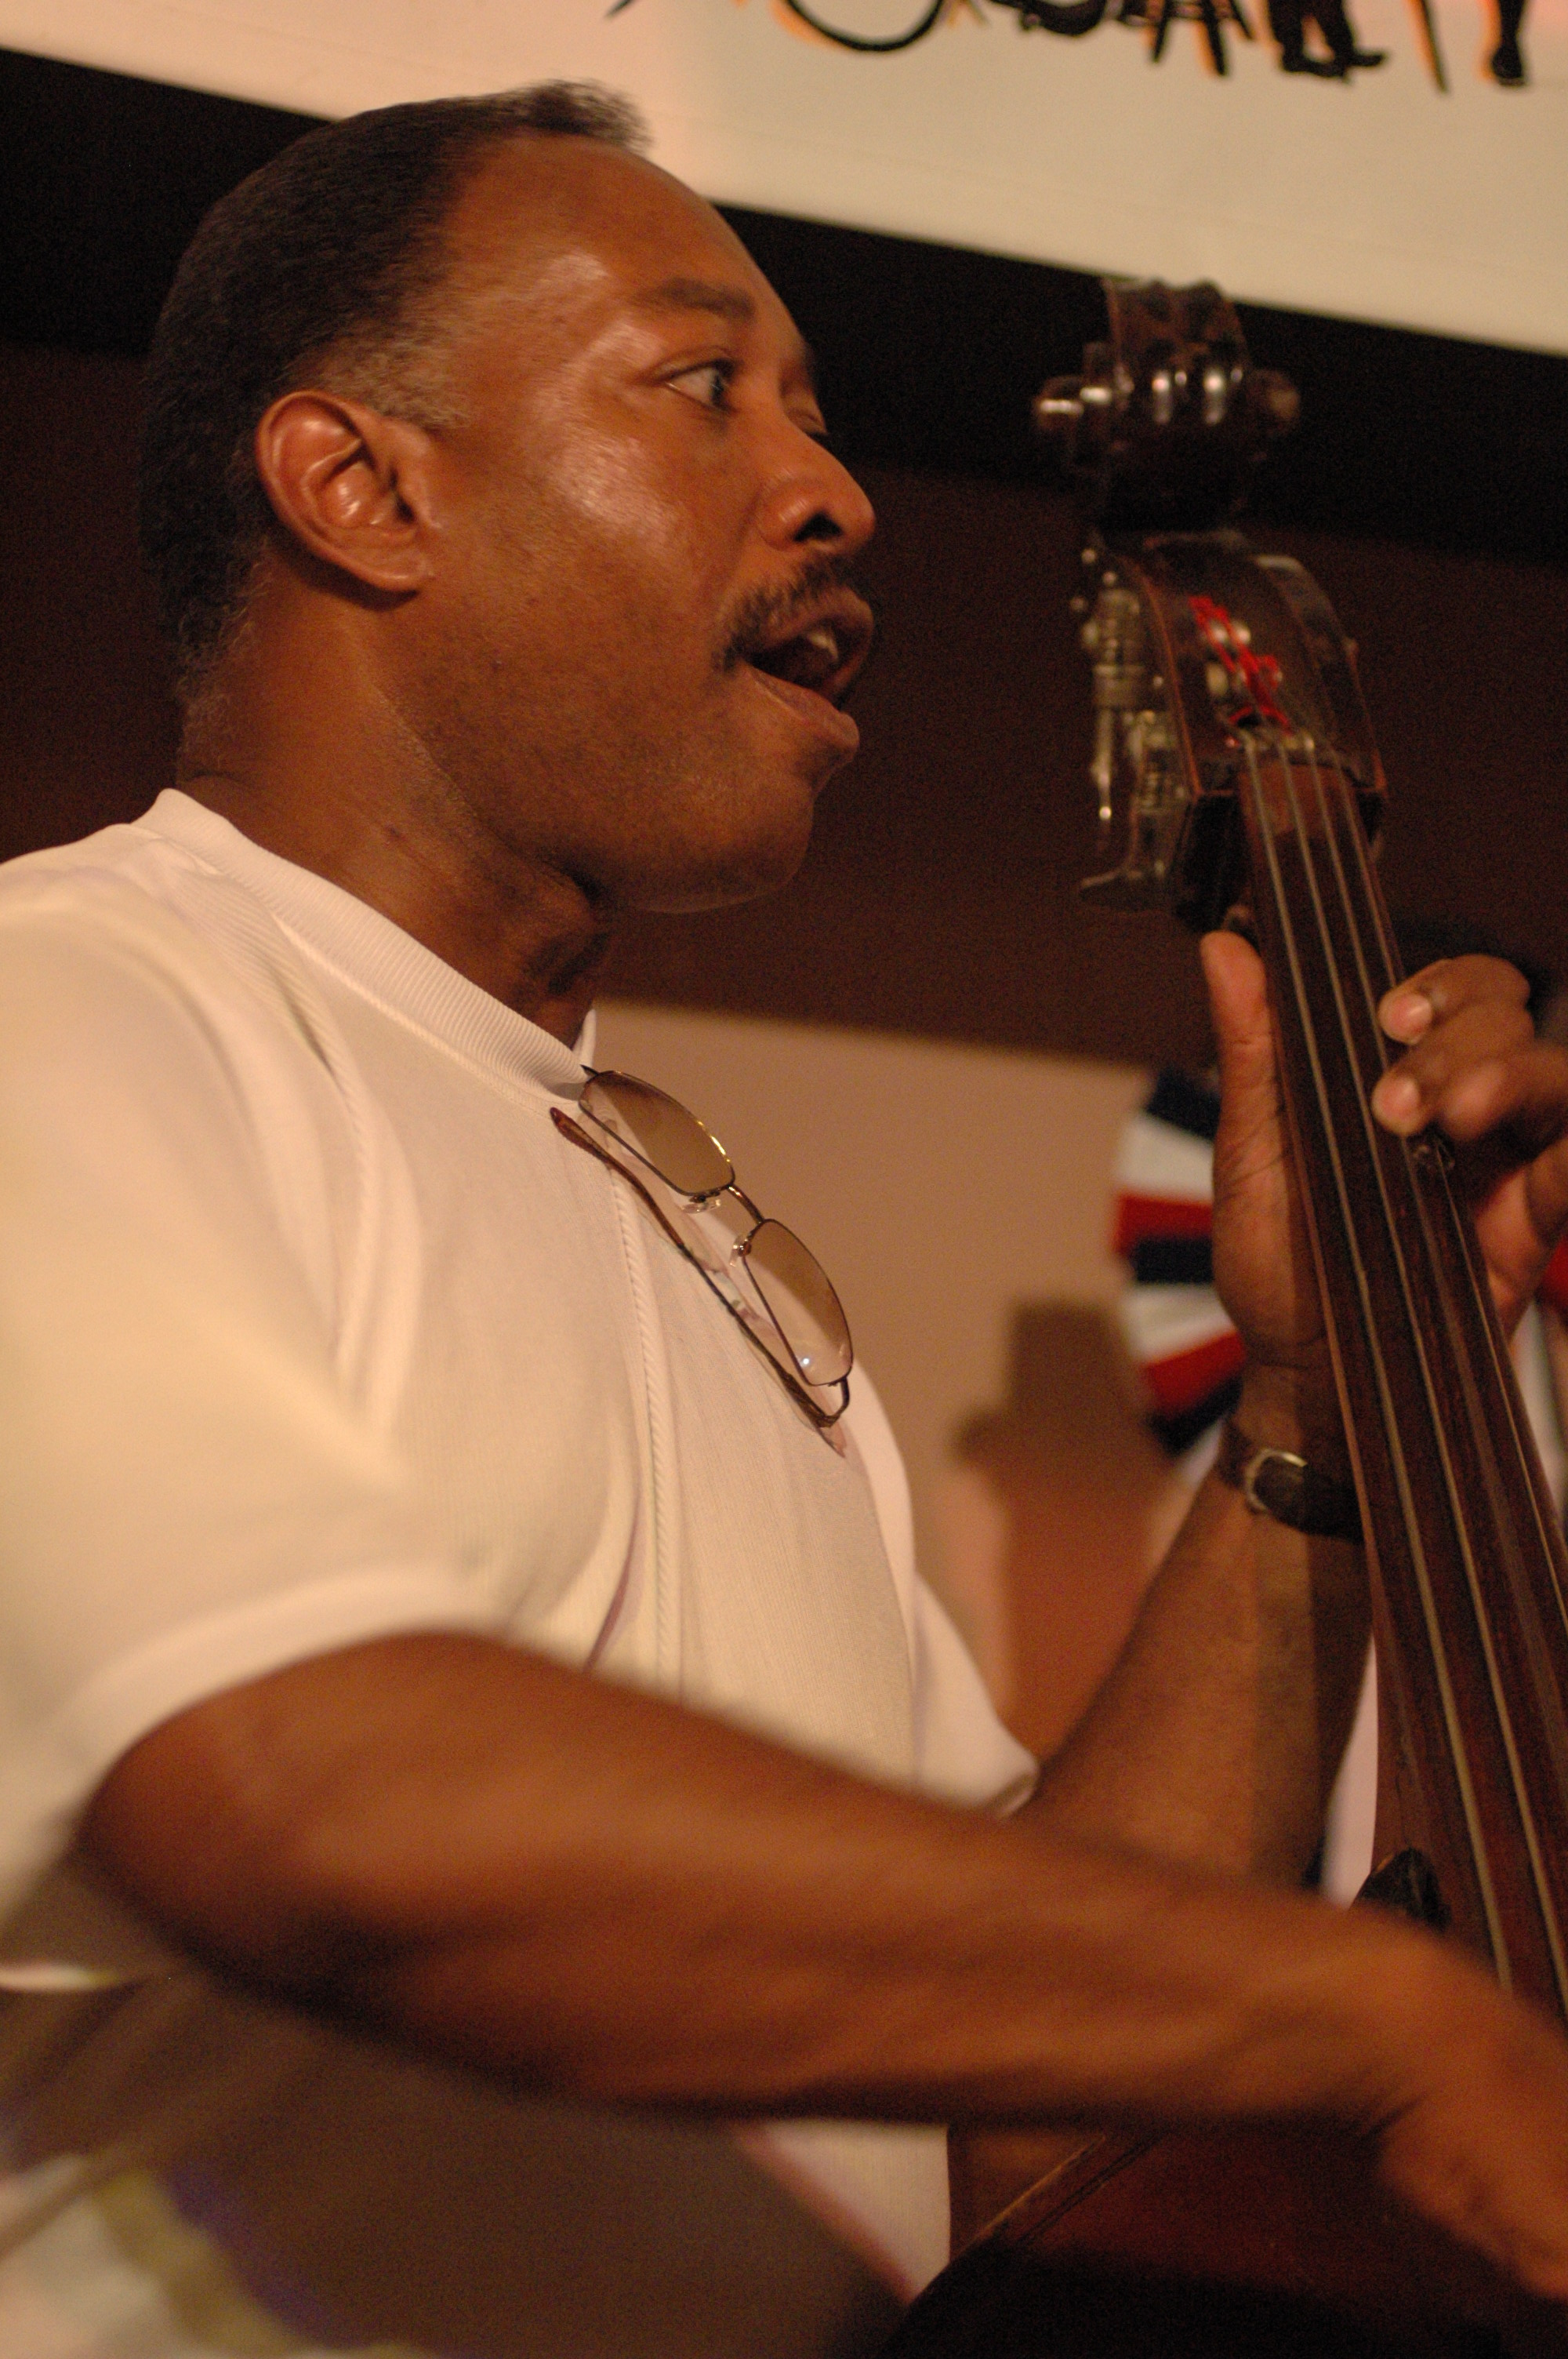 Bassist Lee Smith